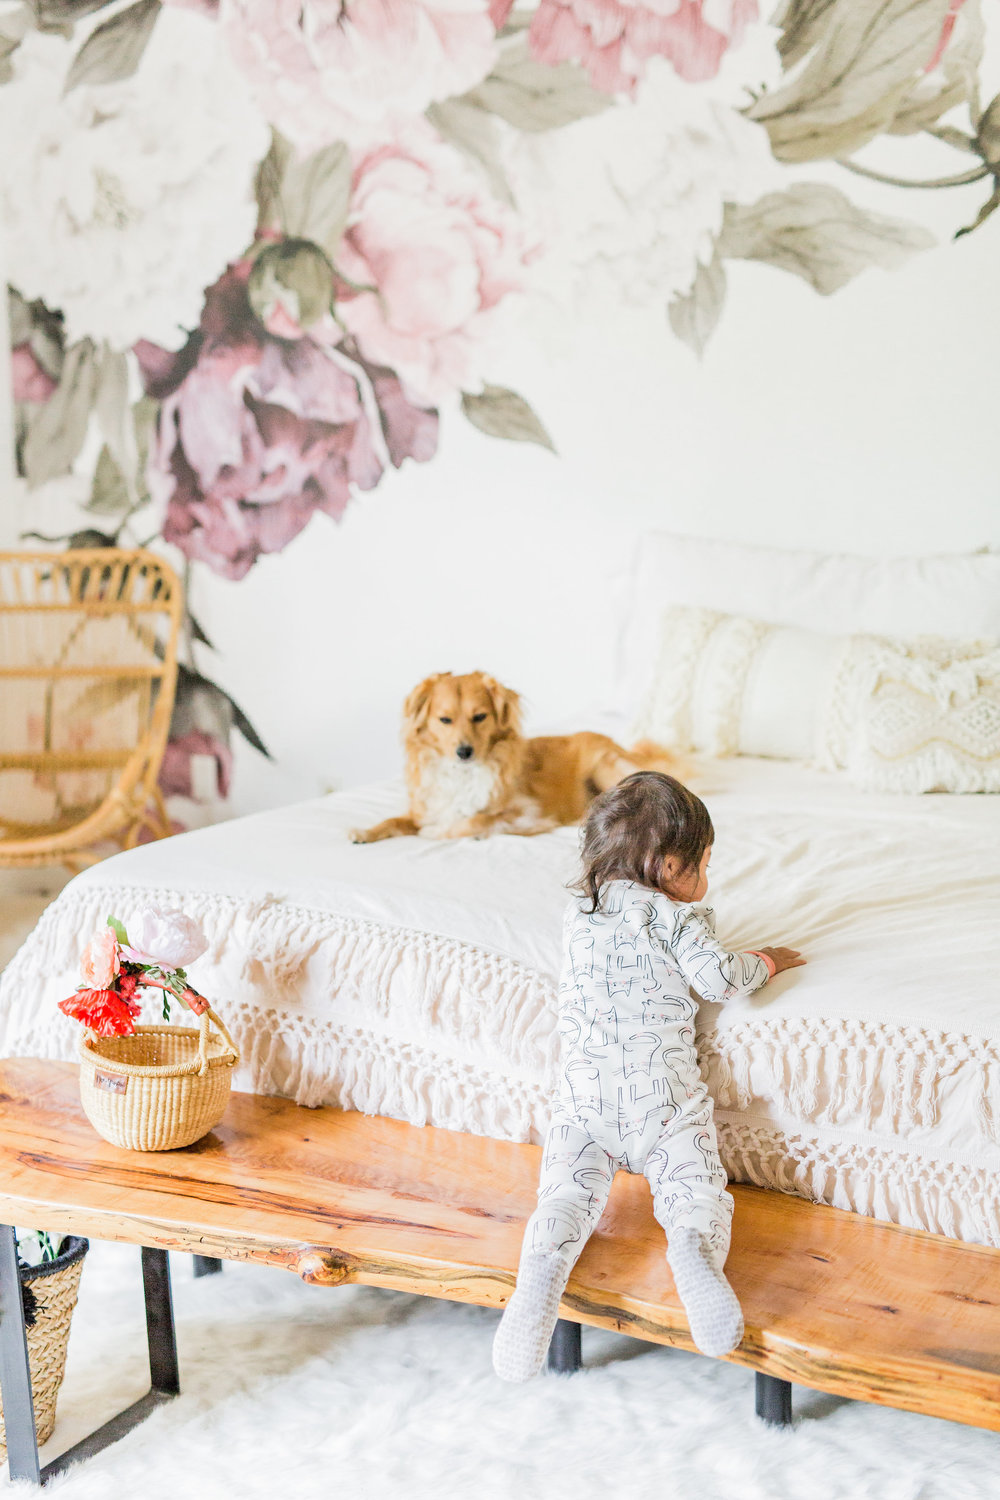 Carter's cat pjs peony removable wallpaper live edge bench